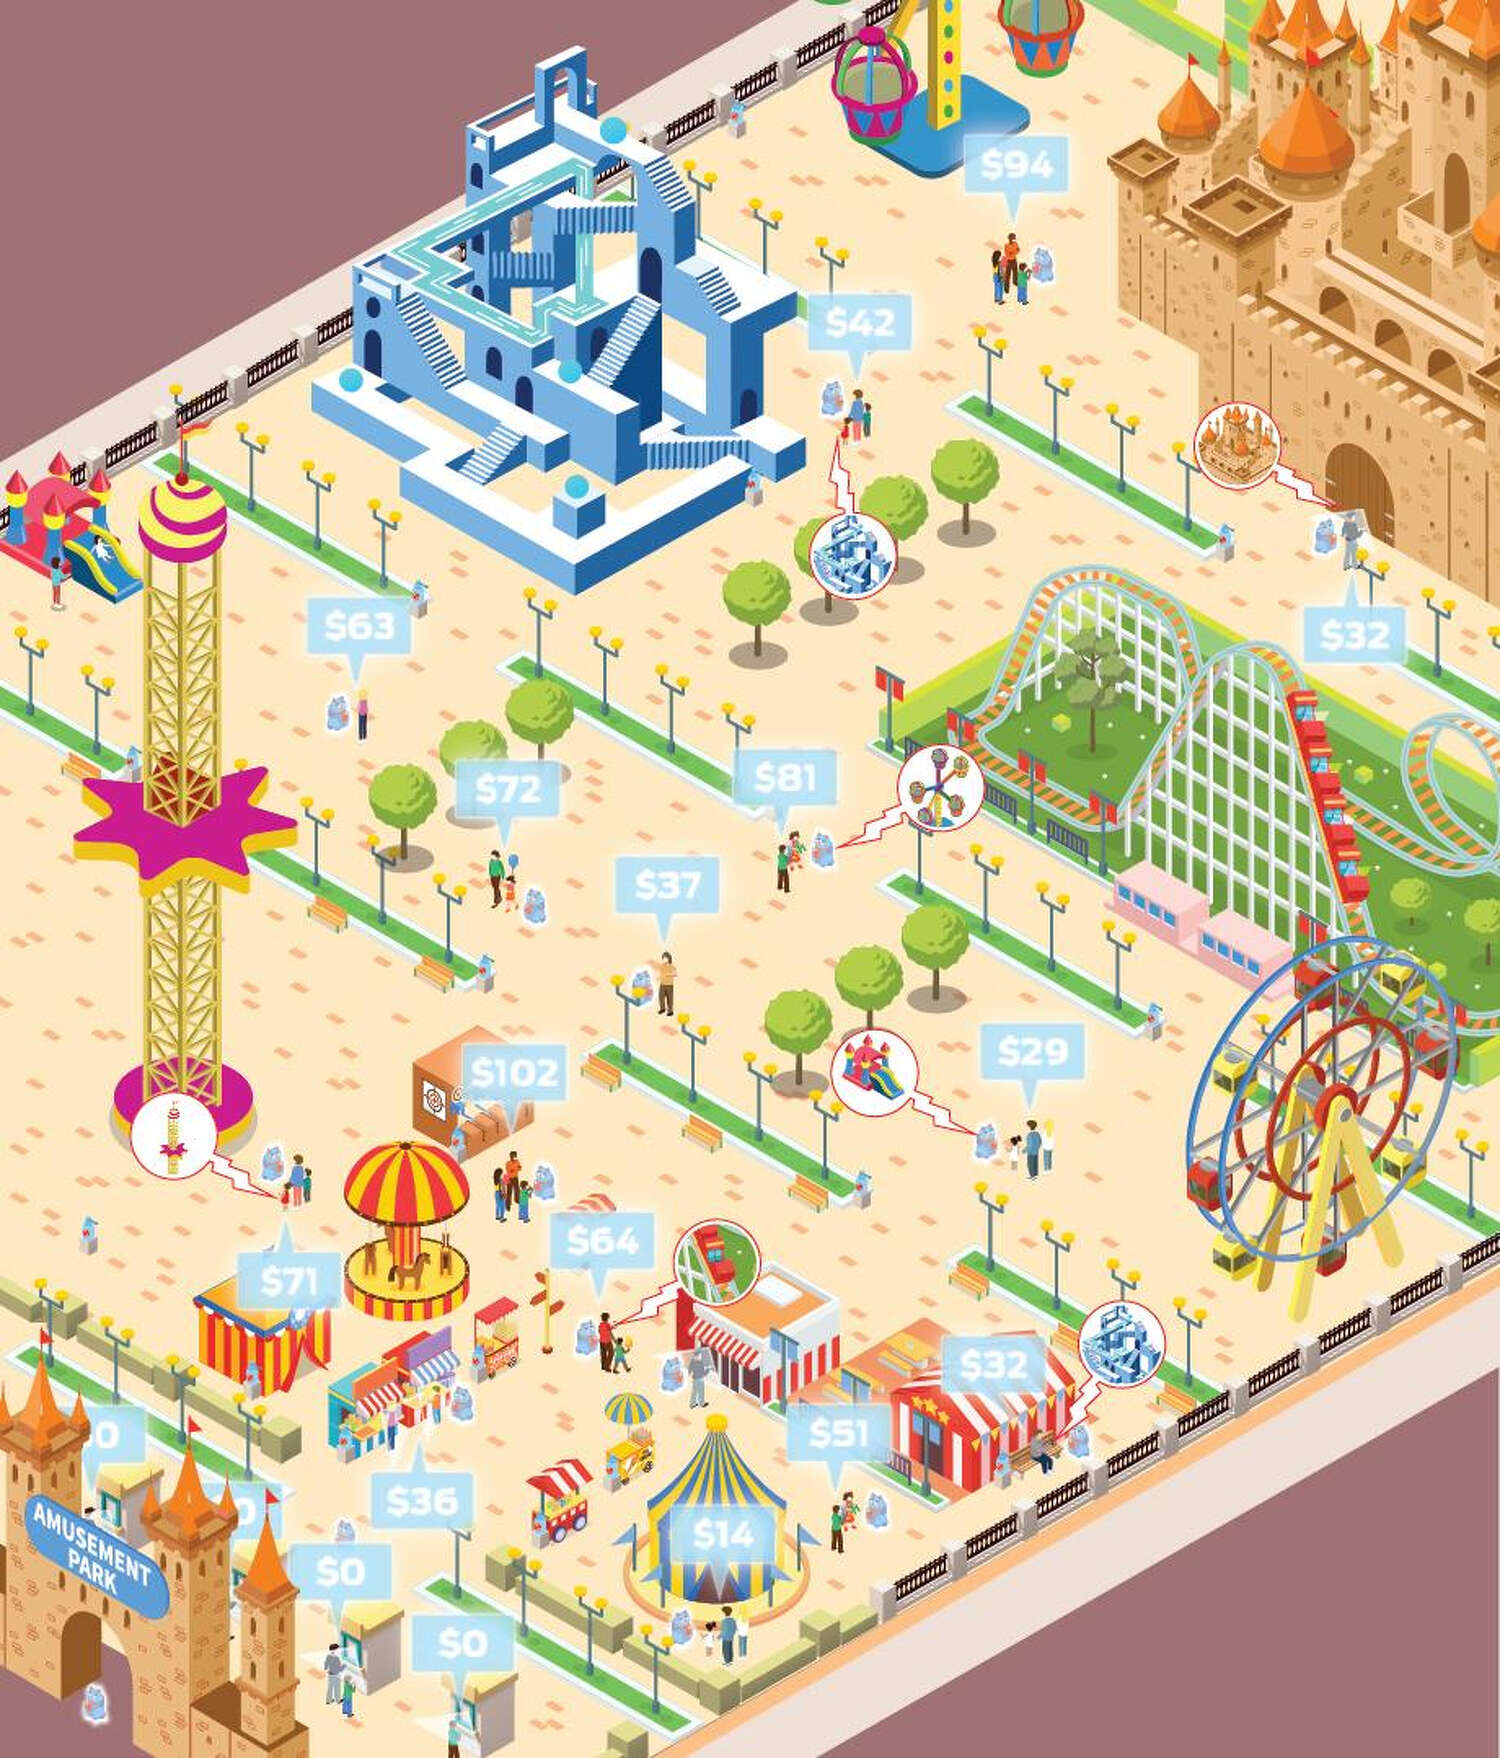 An illustration depicts a generic amusement park with new features that would make operation during a pandemic safer.